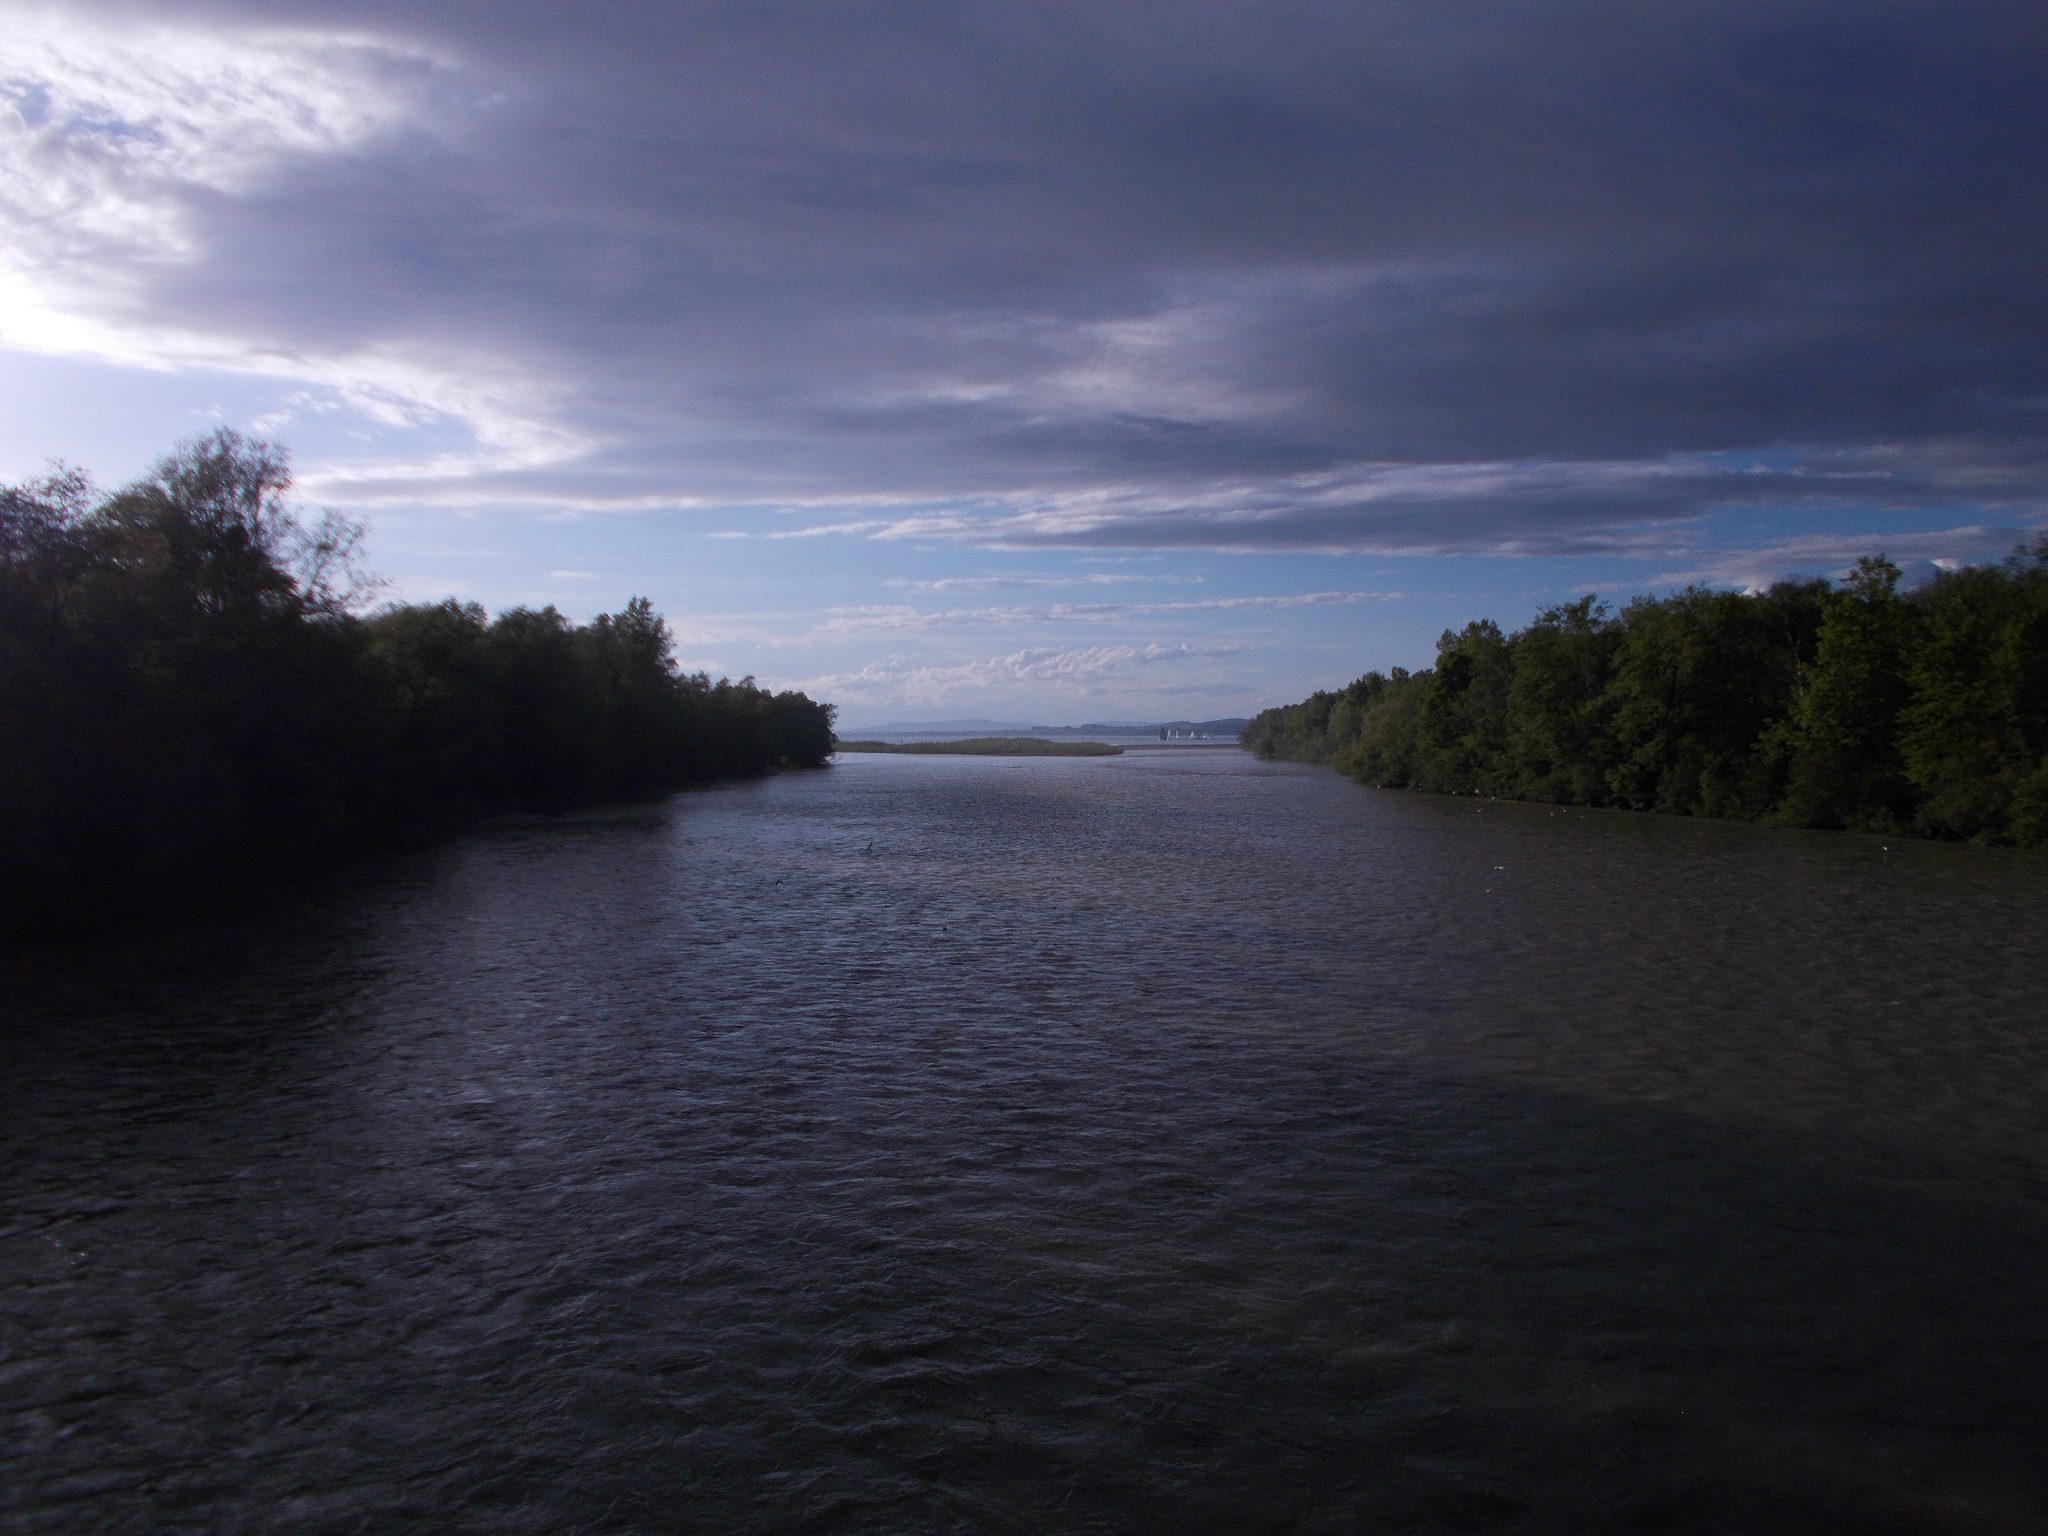 A wide shot of a river leading into a lake, with treed areas on either side. Clouds above.